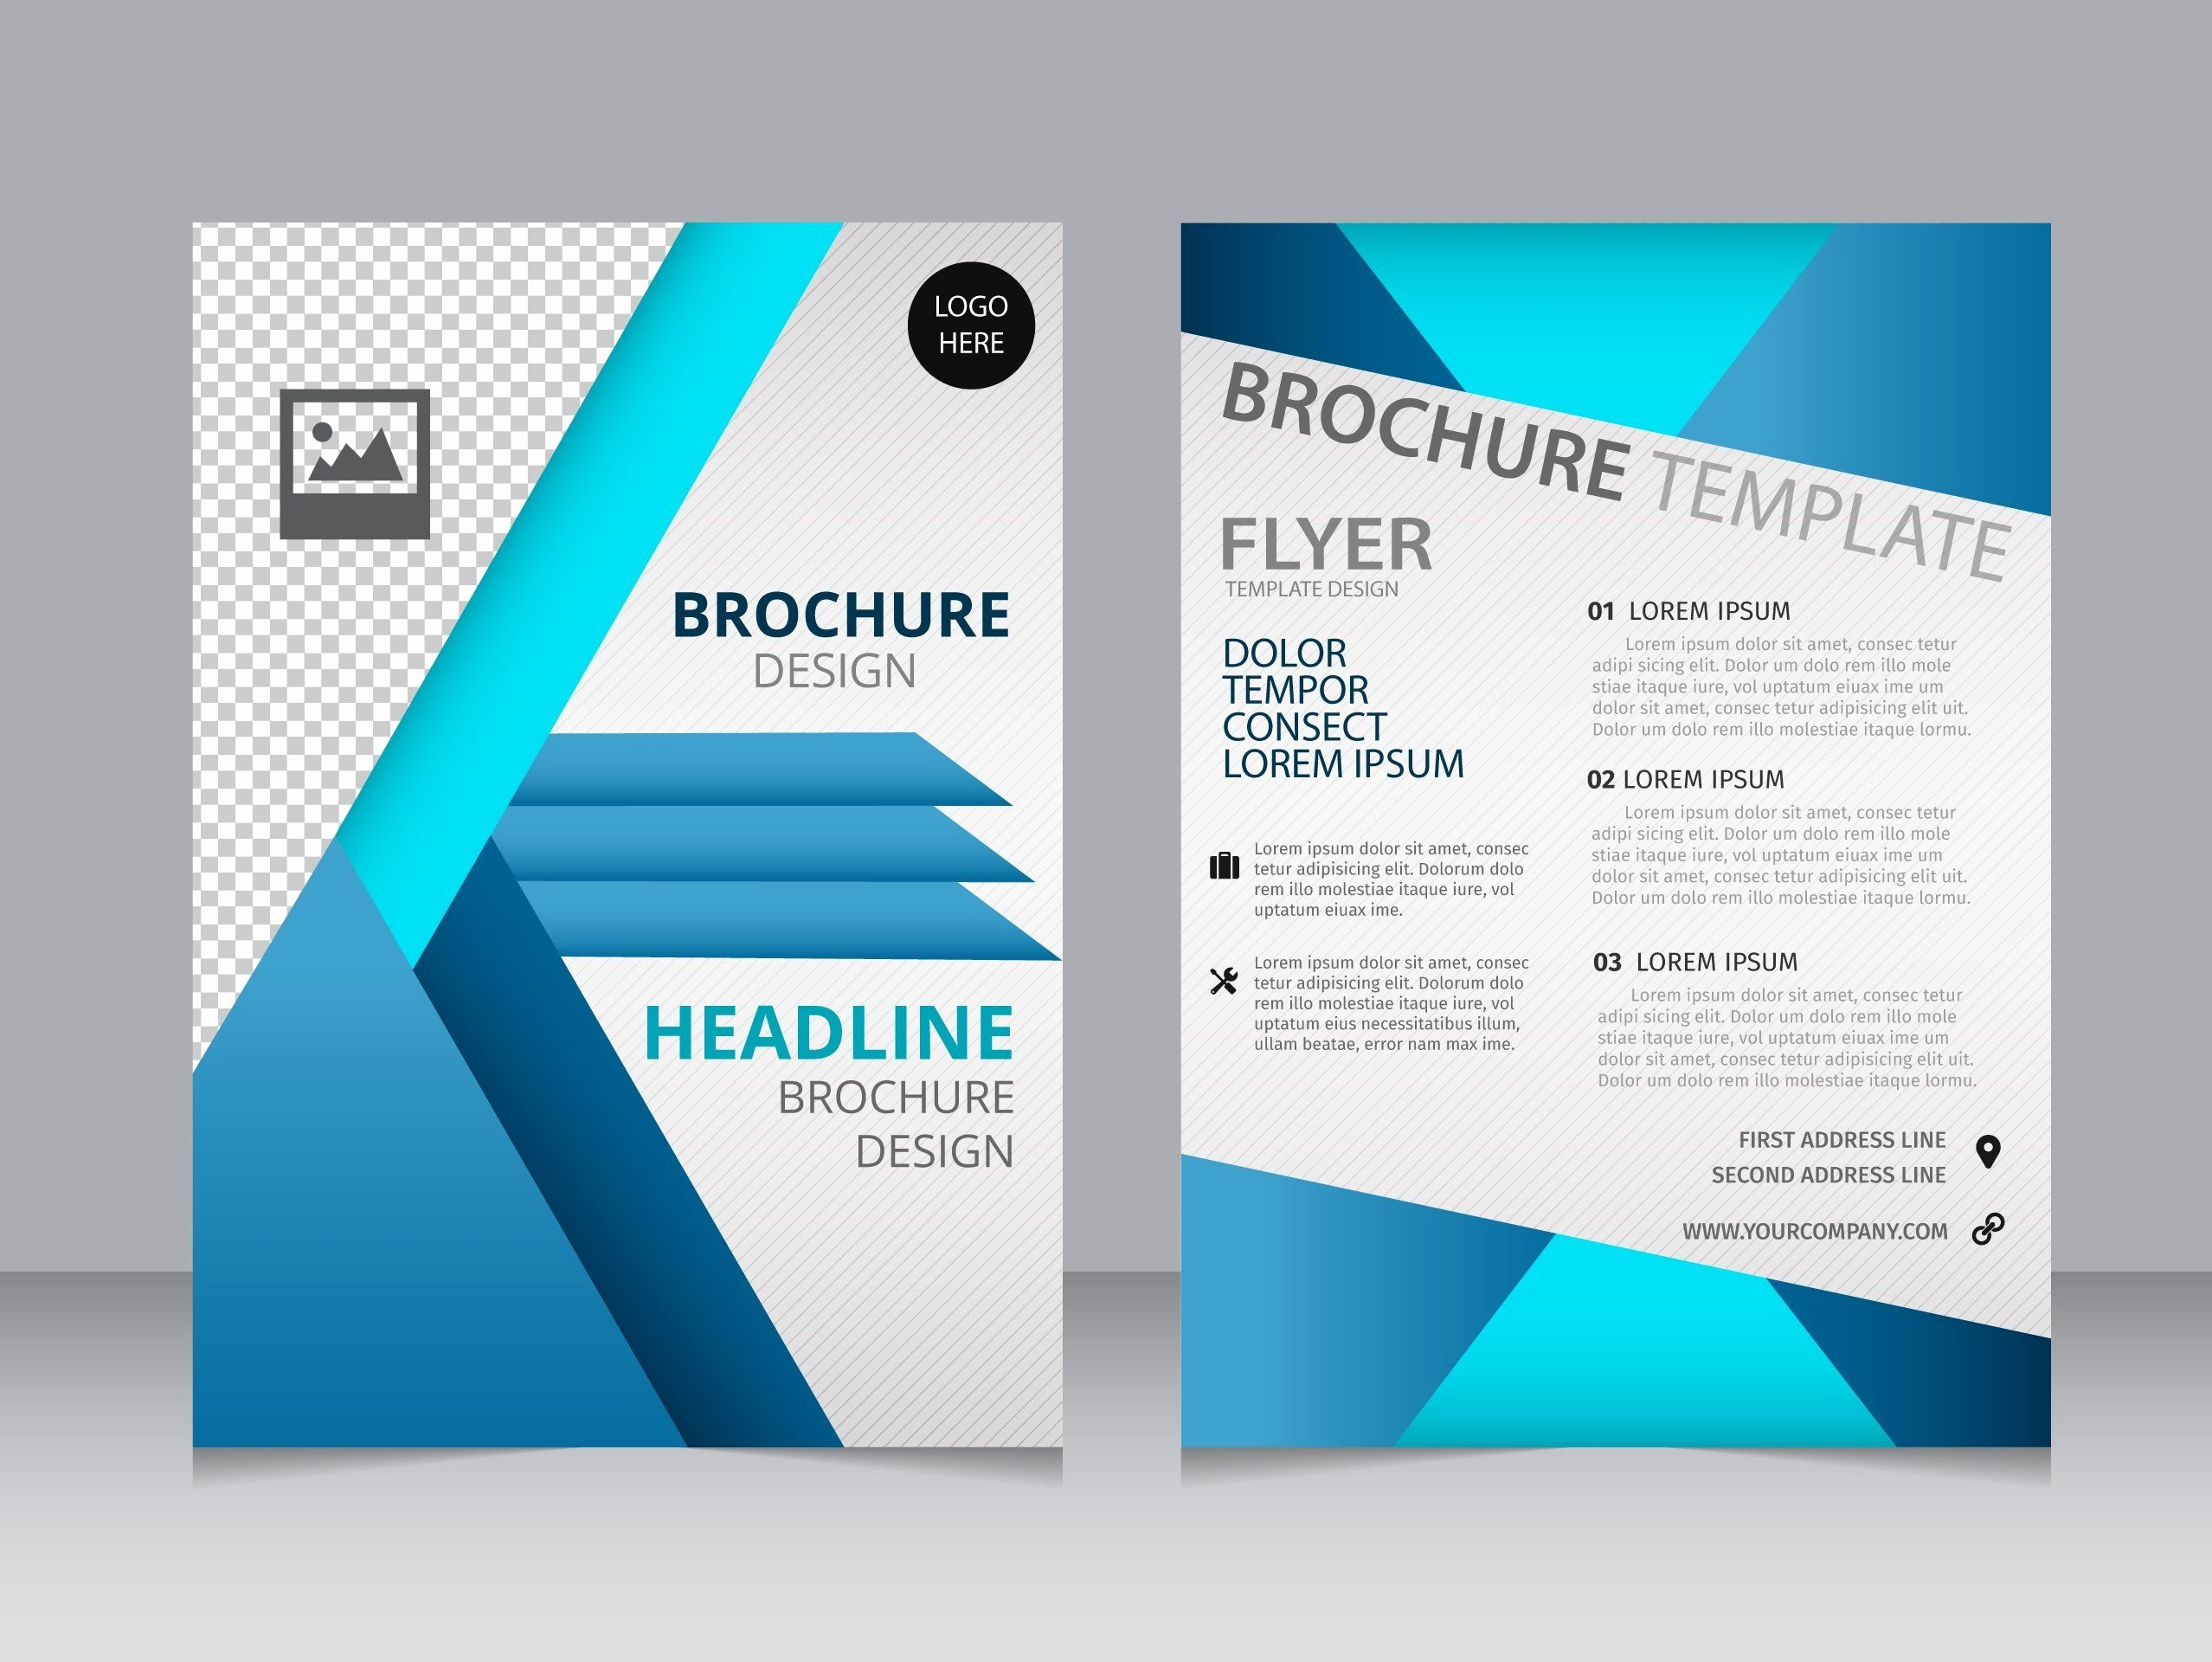 Booklet Template Free Download Awesome 11 Free Sample Travel Brochure Templates Printable Samples